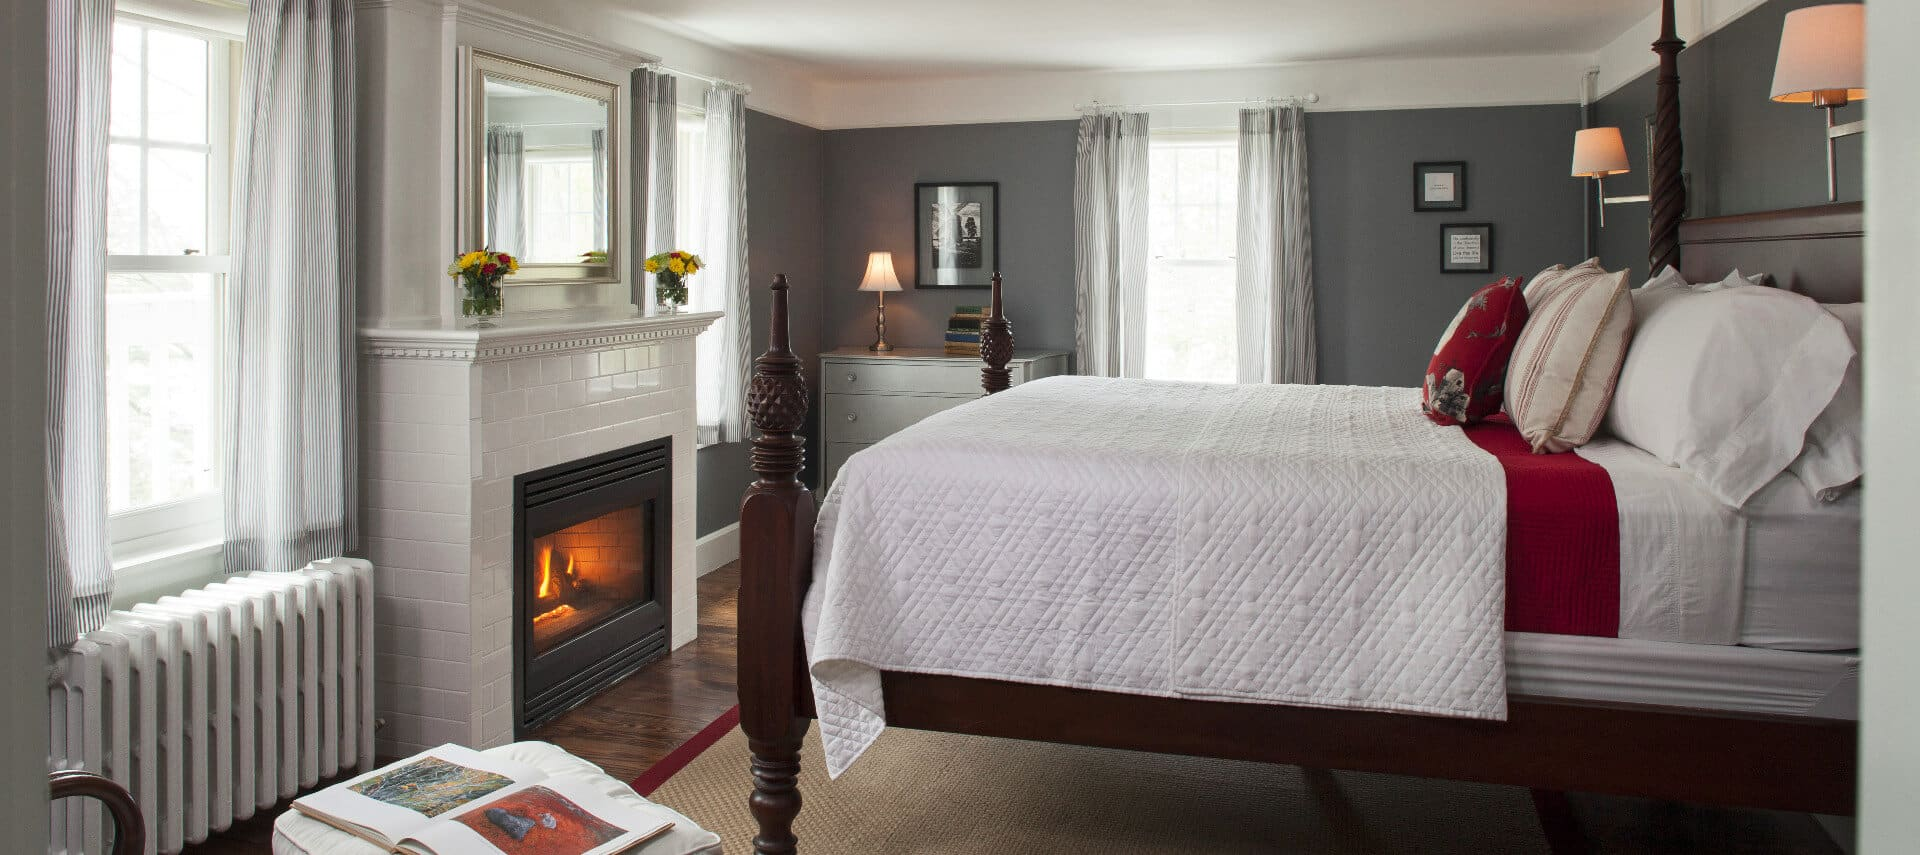 Large four-post bed made up in white in a room with grey walls and white crown molding and a white fireplace..